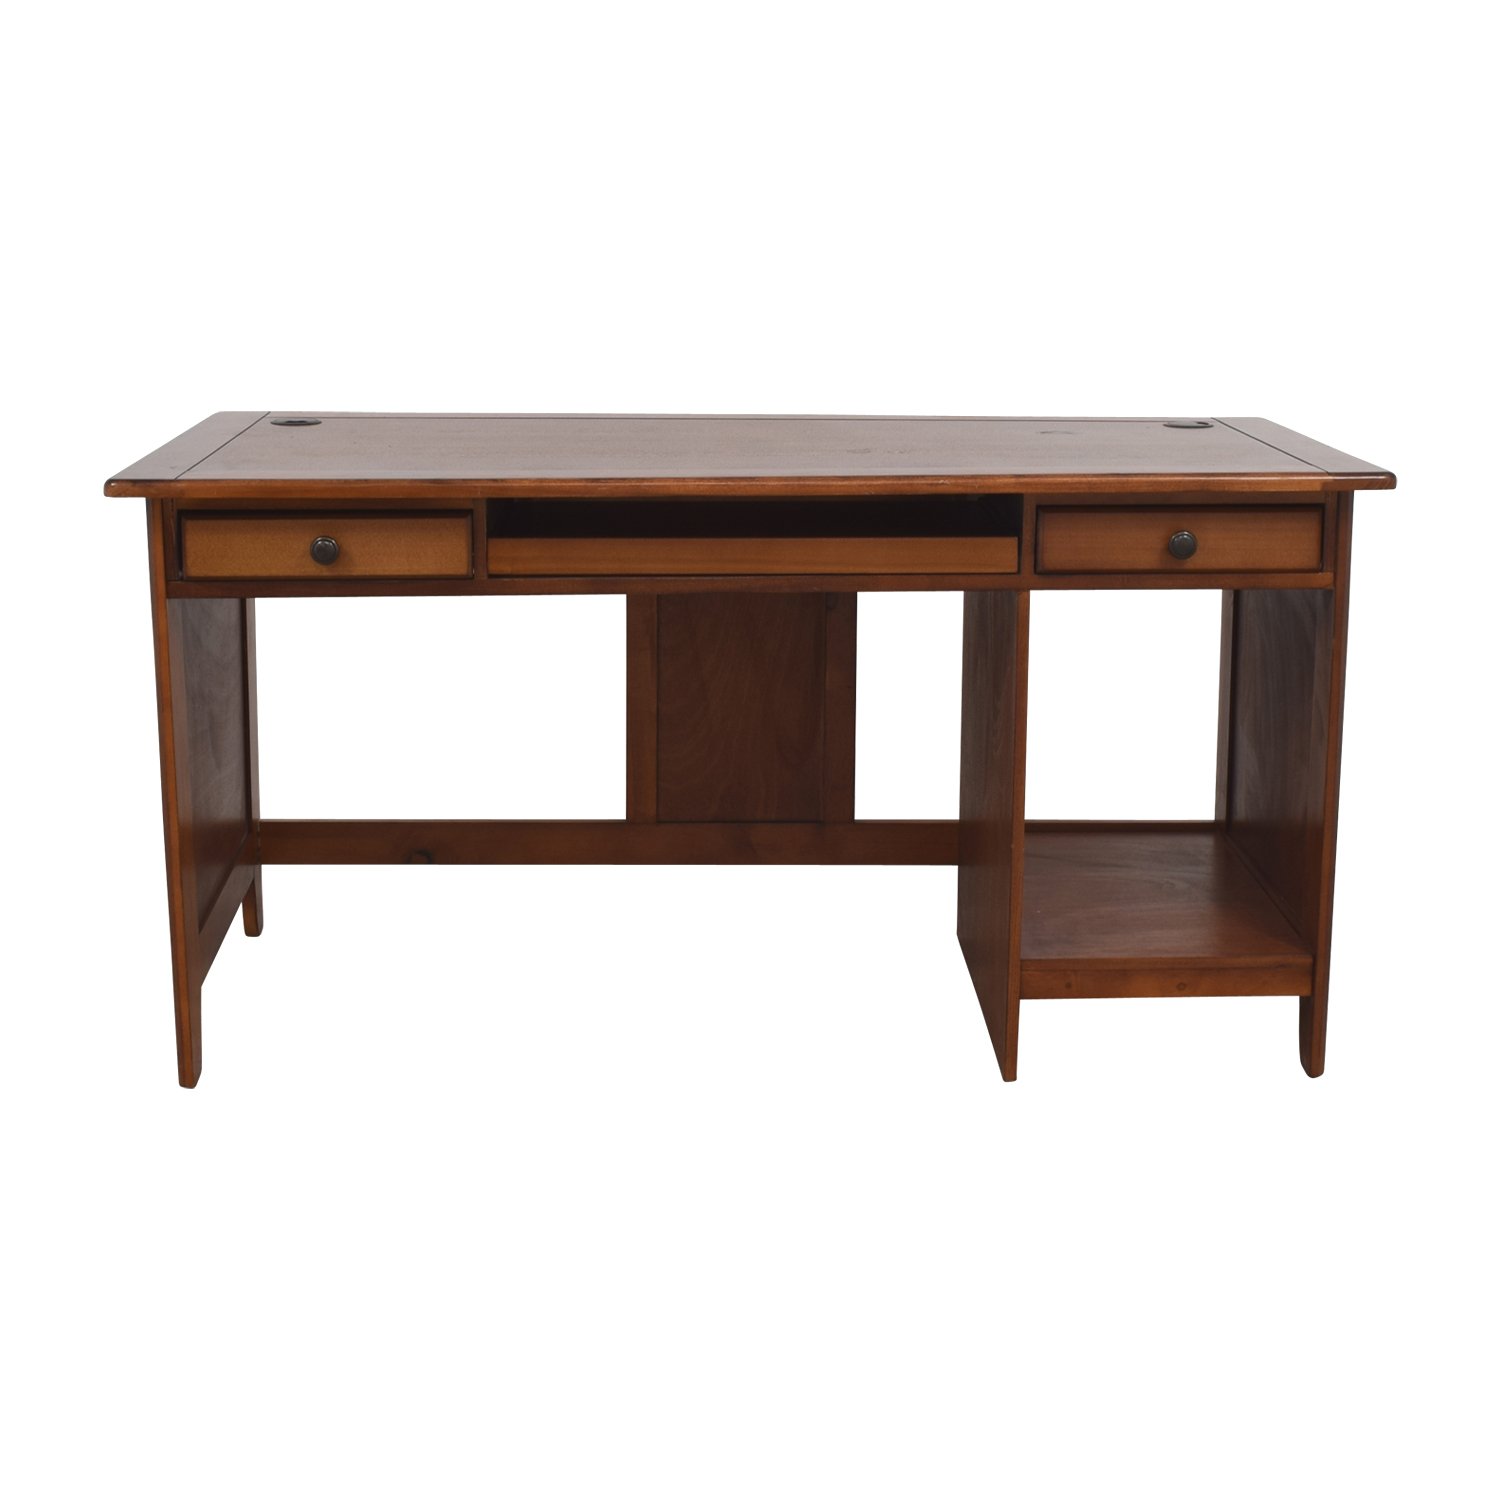 76% OFF - Glass-Top Dark Brown Wood Desk with File Cabinet / Tables